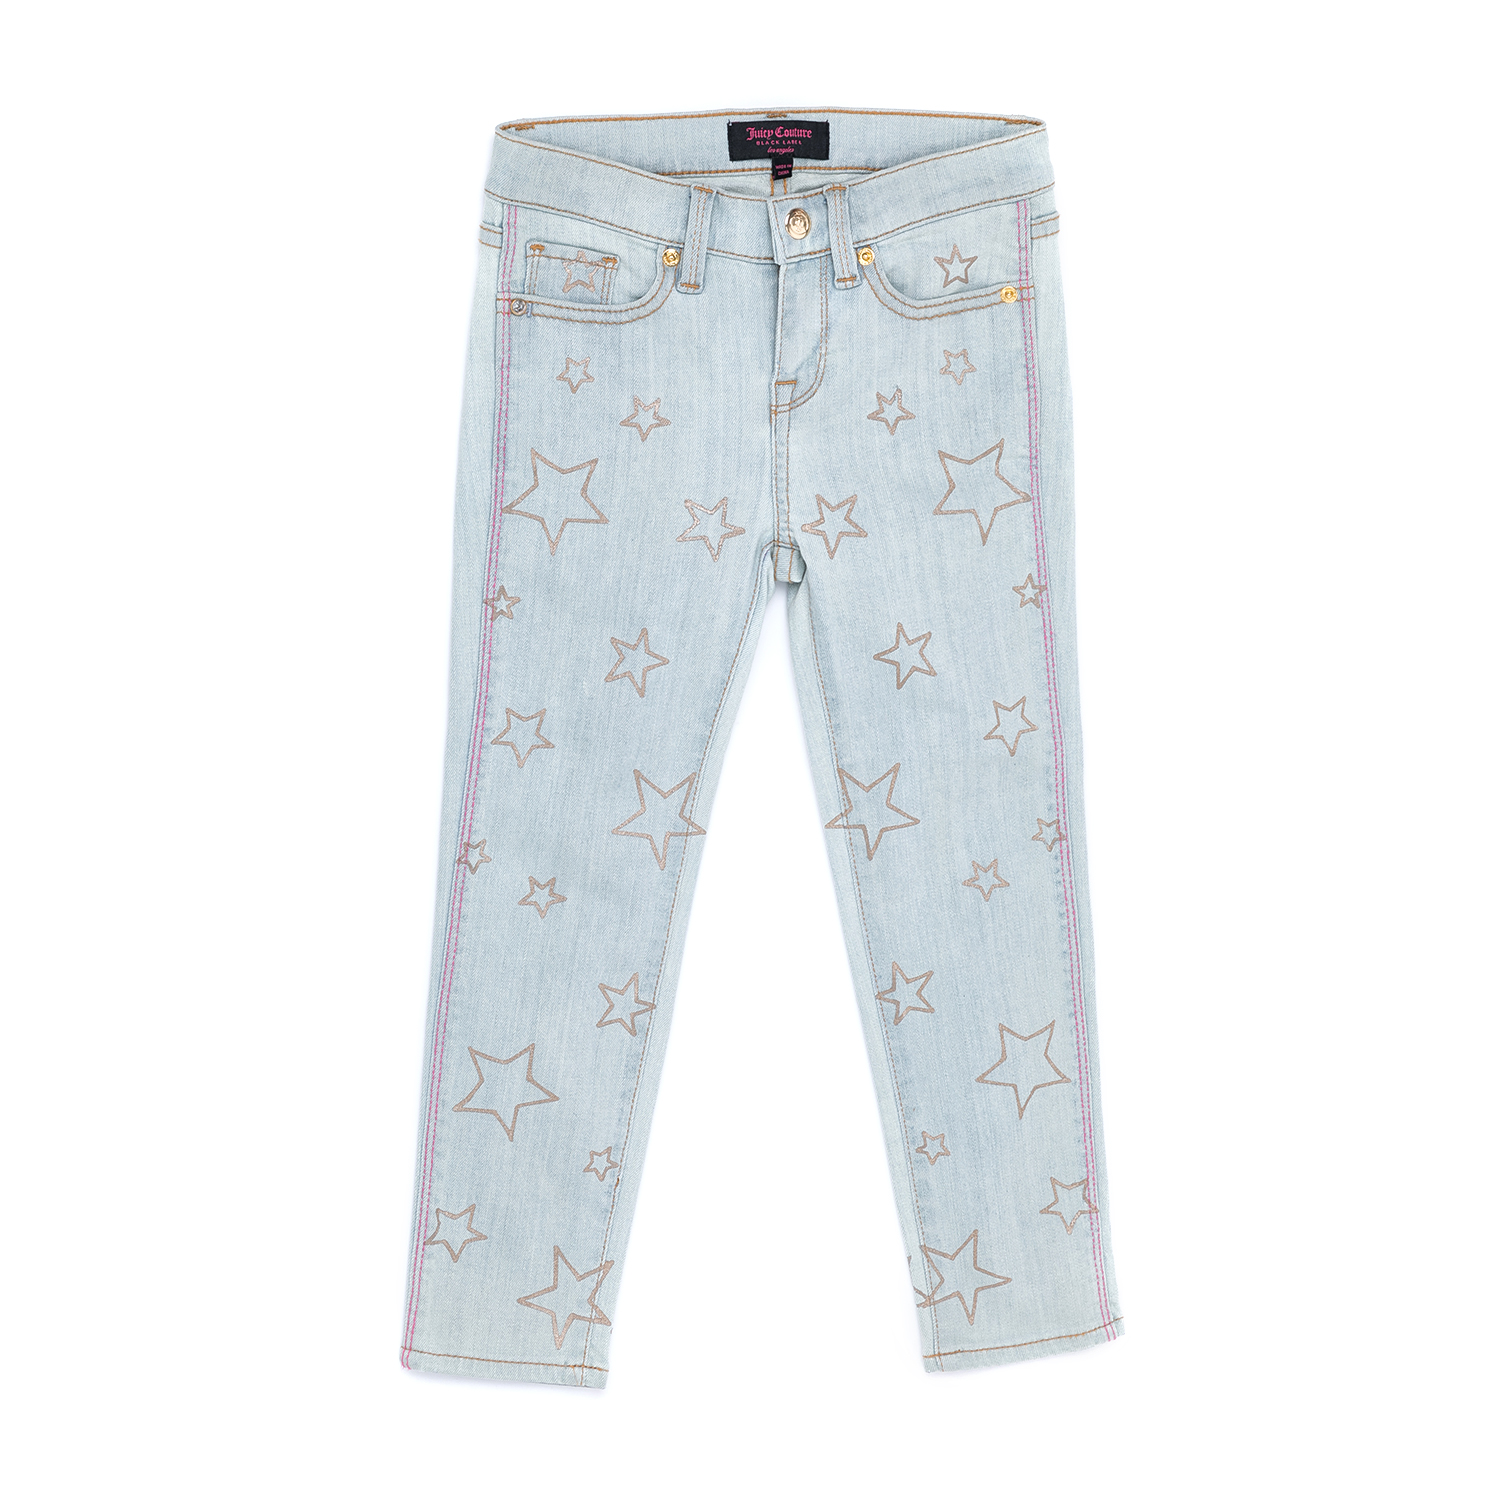 JUICY COUTURE KIDS – Παιδικό παντελόνι JUICY COUTURE KIDS μπλε